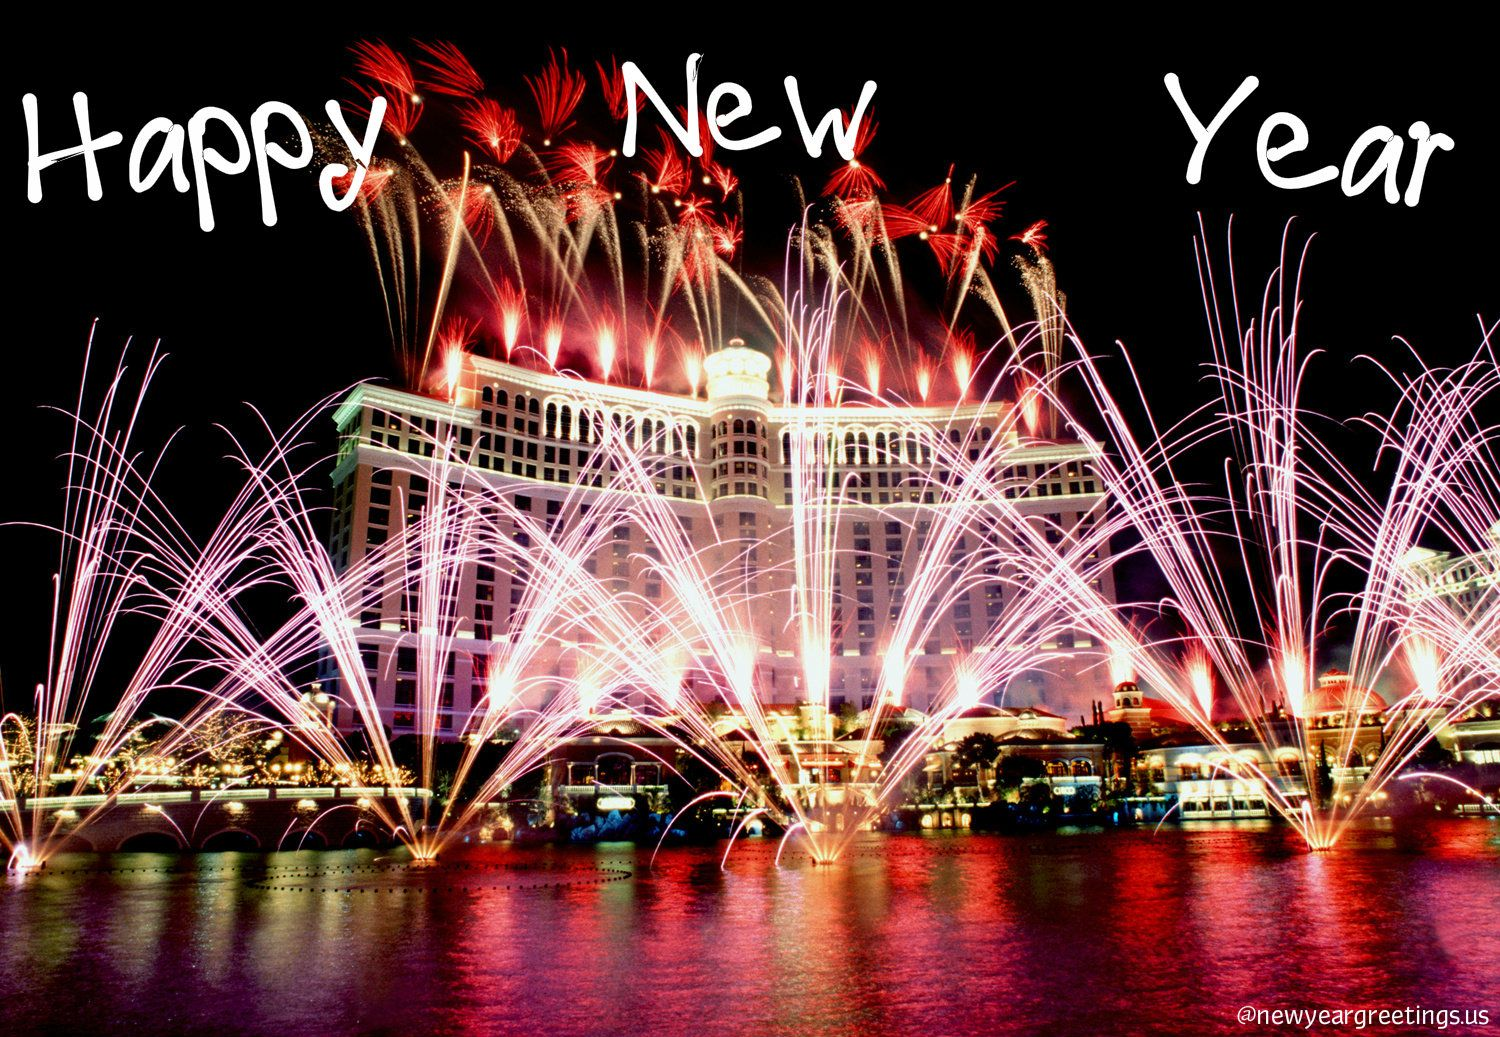 Wallpaper download new year - Happy New Years 2014 Happy New Year Wallpapers 2014 Download